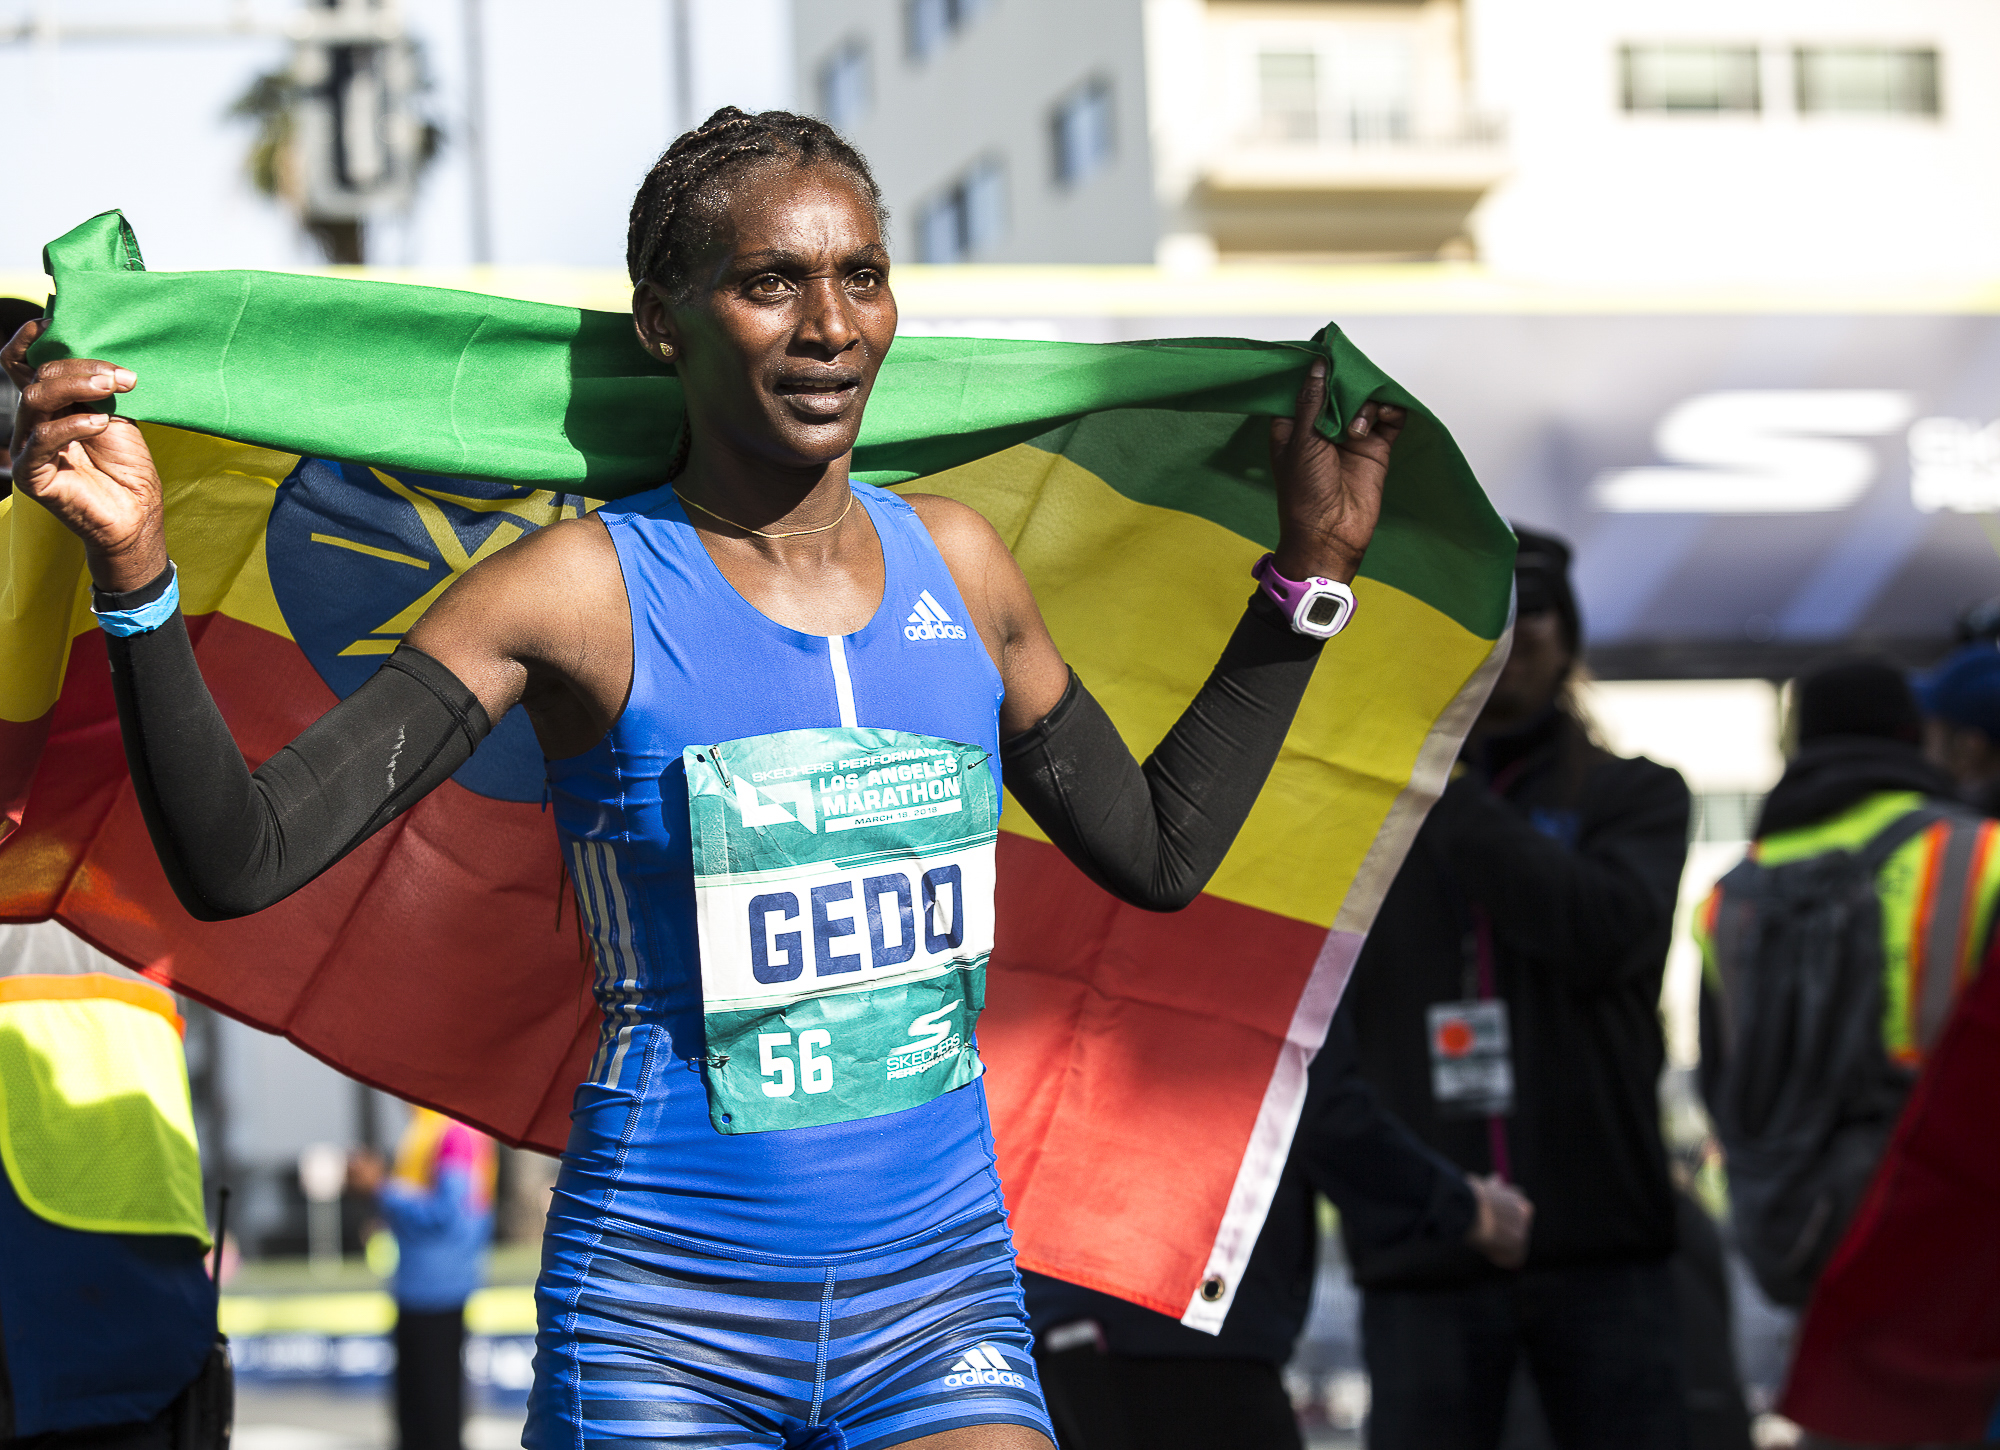 Sule Gedo, the first women to cross the finish line at 2:33:52, proudly holds the Ethiopian flag during the 33rd annual Los Angeles Marathon event on March 18, 2018 in Santa Monica, California. (Matthew Martin/Corsair Photo)